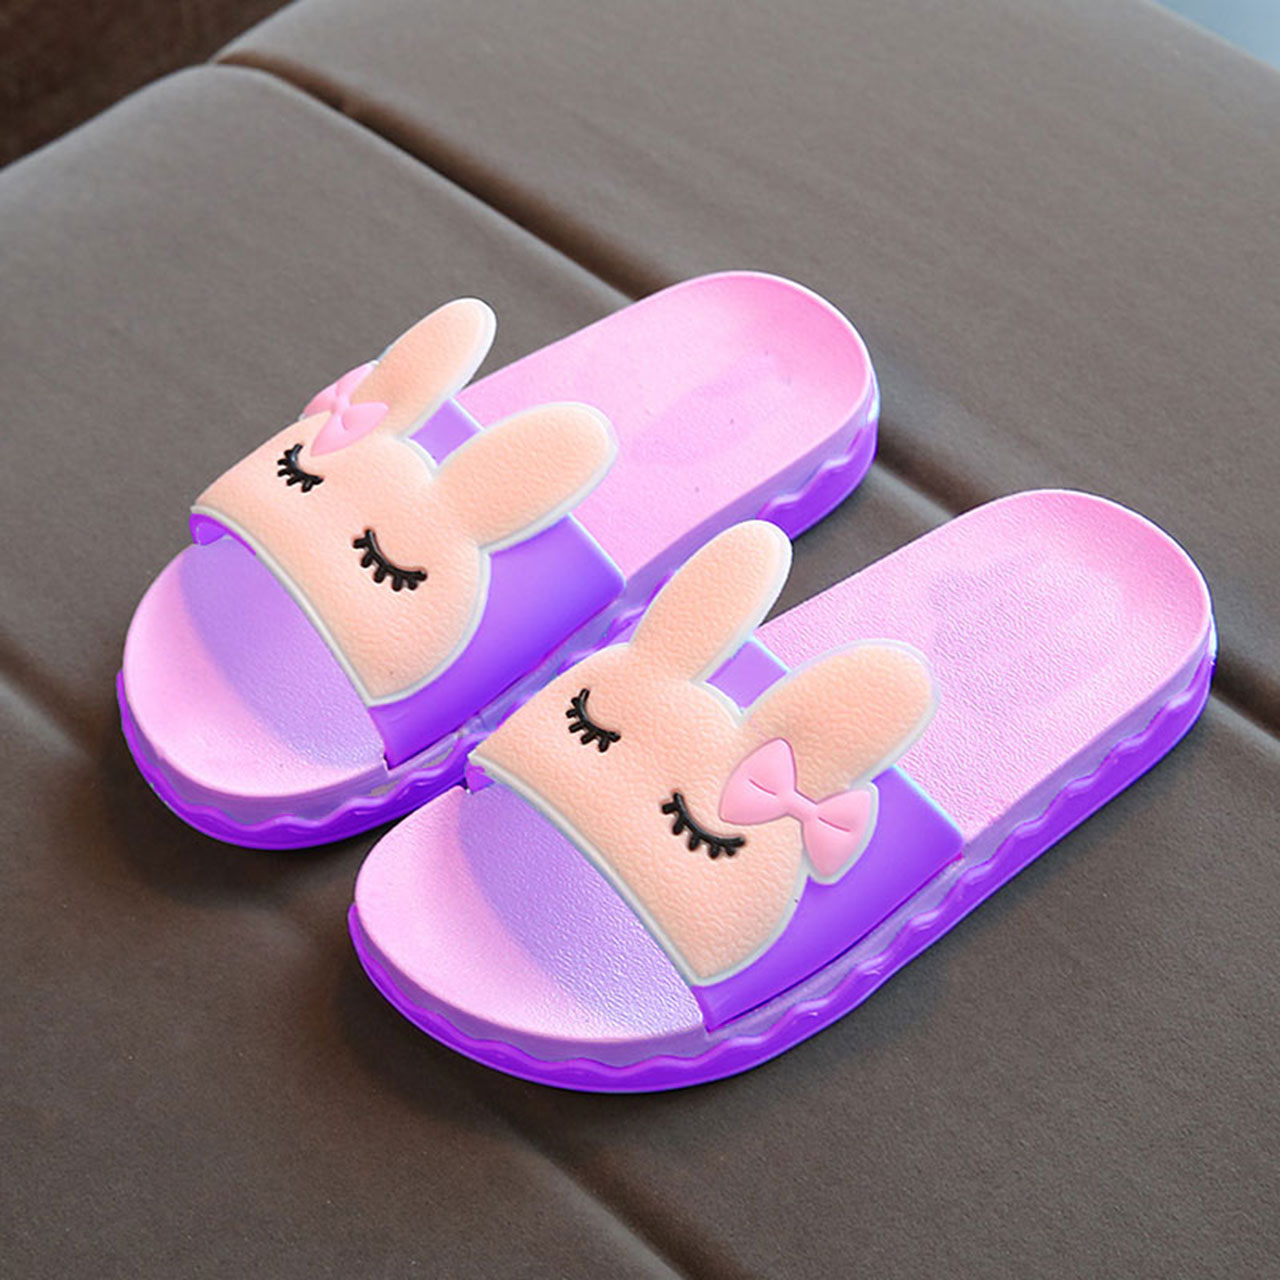 d74a5f7caf7926 USD 18.17  Children slippers female indoor girls slippers summer ...